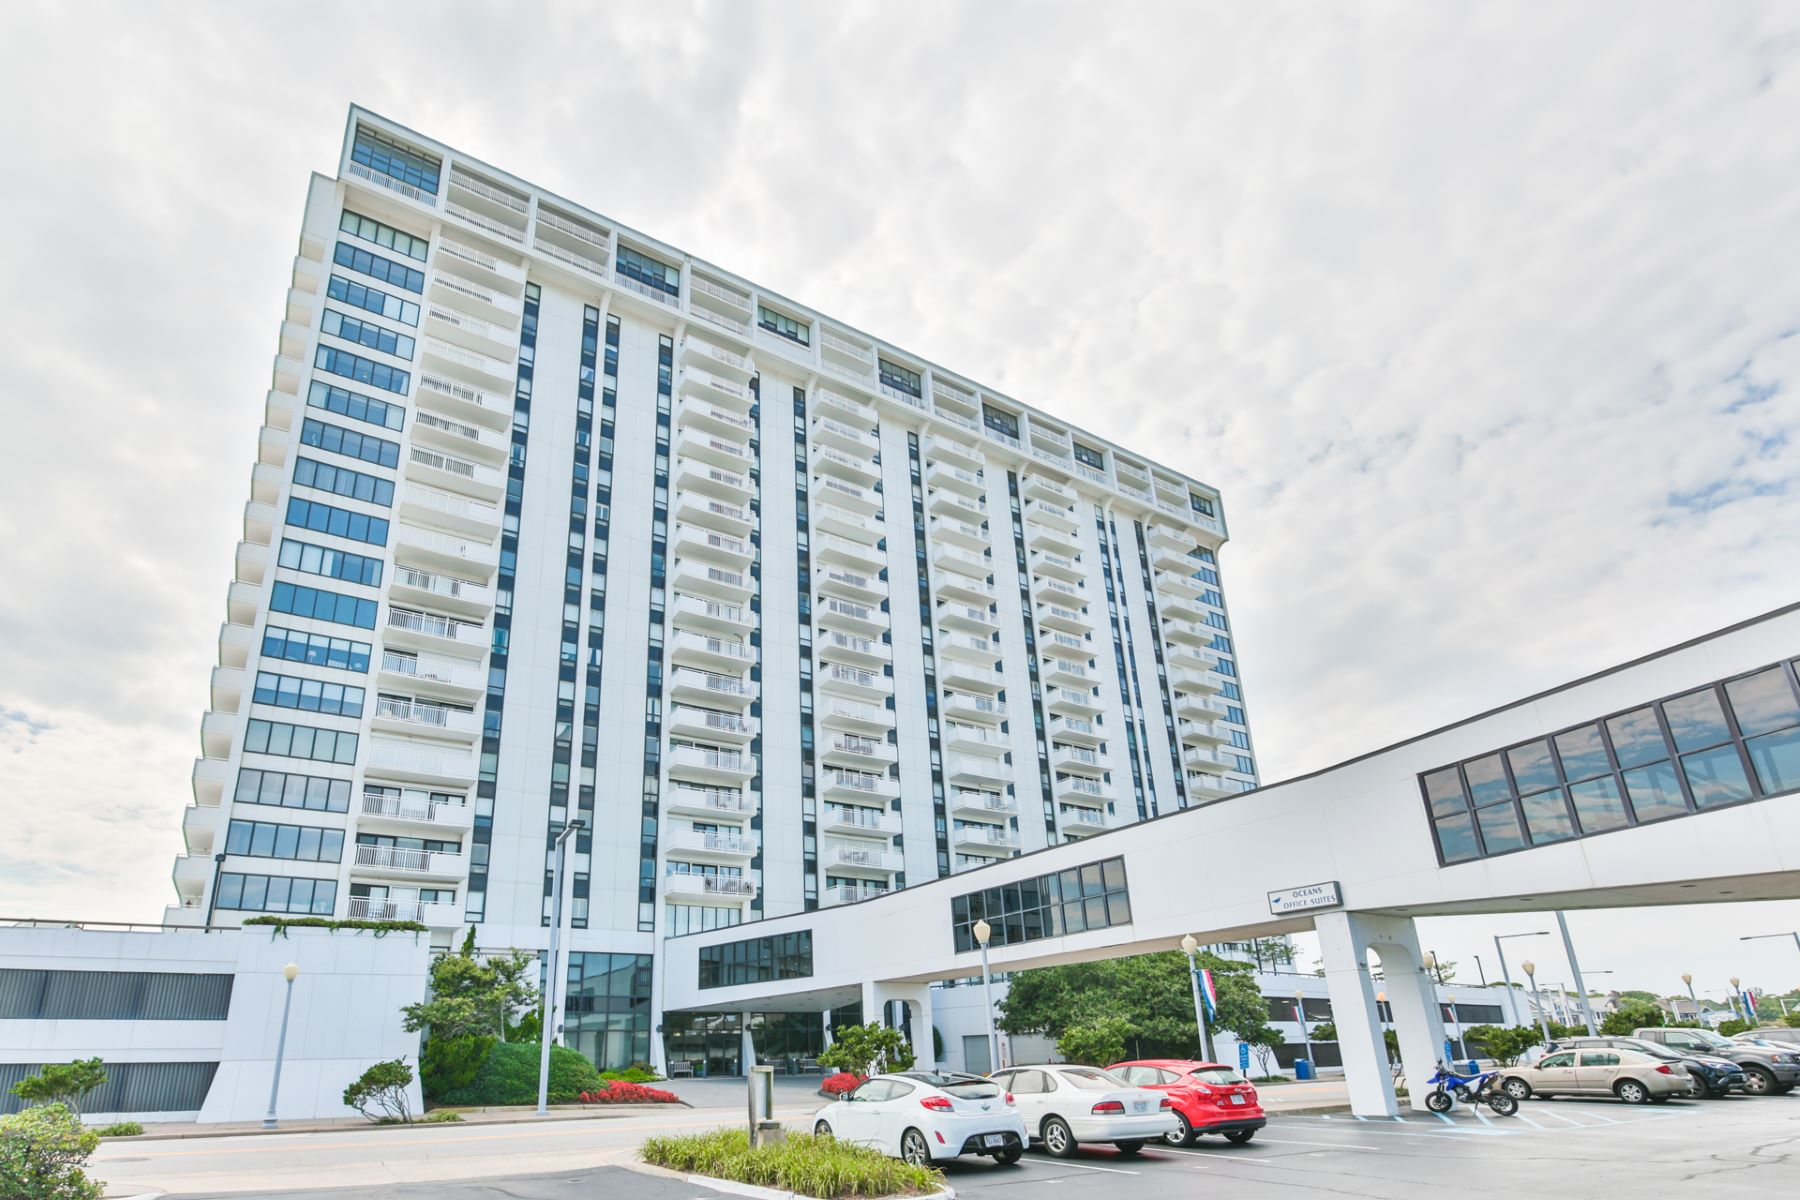 Кондоминиум для того Продажа на Oceans Condominiums 4004 Atlantic Avenue Unit #PH1 Virginia Beach, Виргиния, 23451 Соединенные Штаты